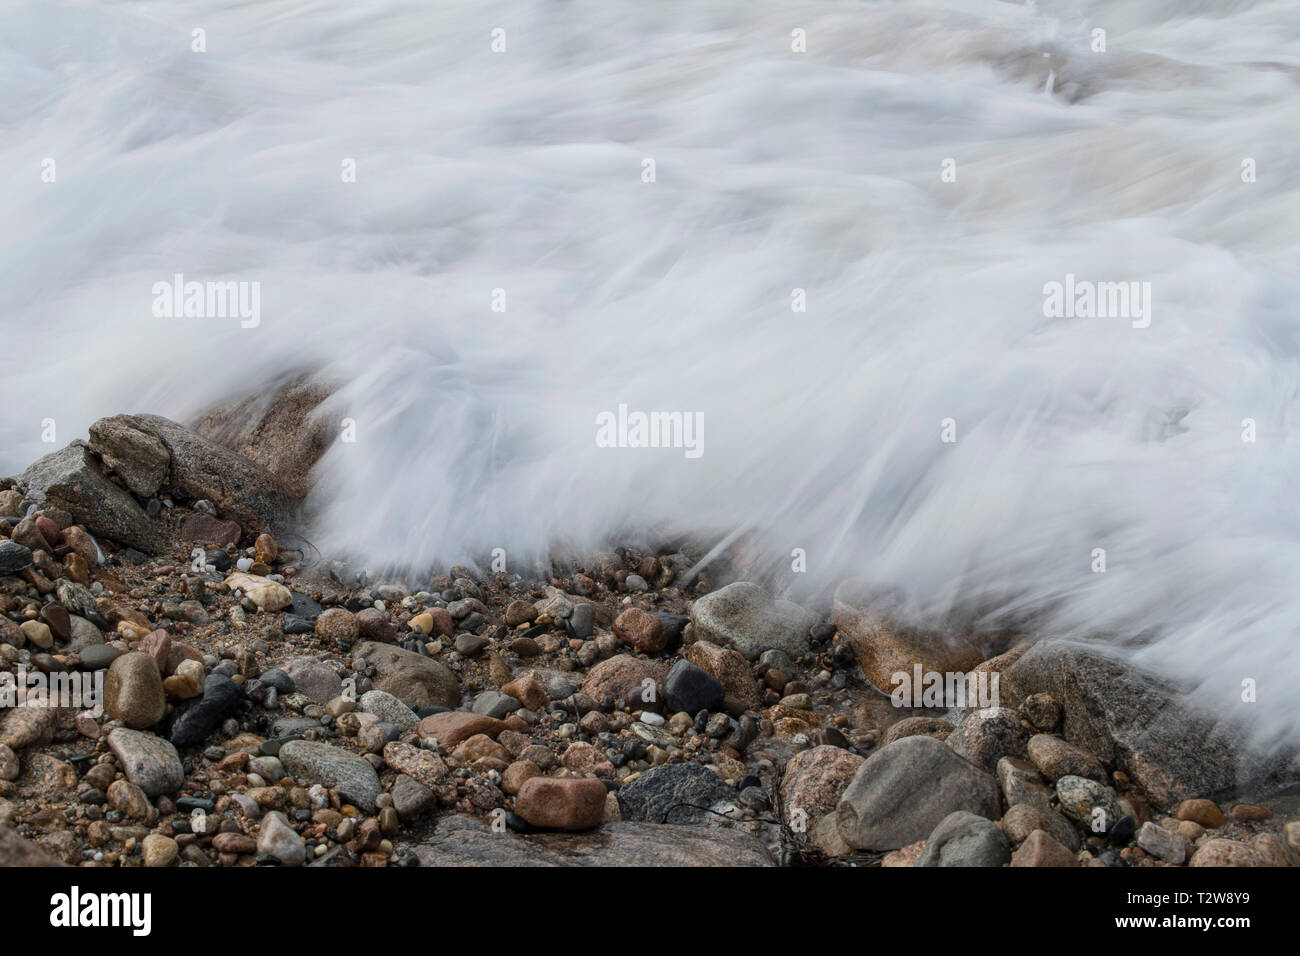 slow shutter waves at Old Harbor Beach, Block Island, RI. Rocky shoreline at Old Harbor Beach, Block Island, Rhode Island, USA. Vacation resort mostly. - Stock Image